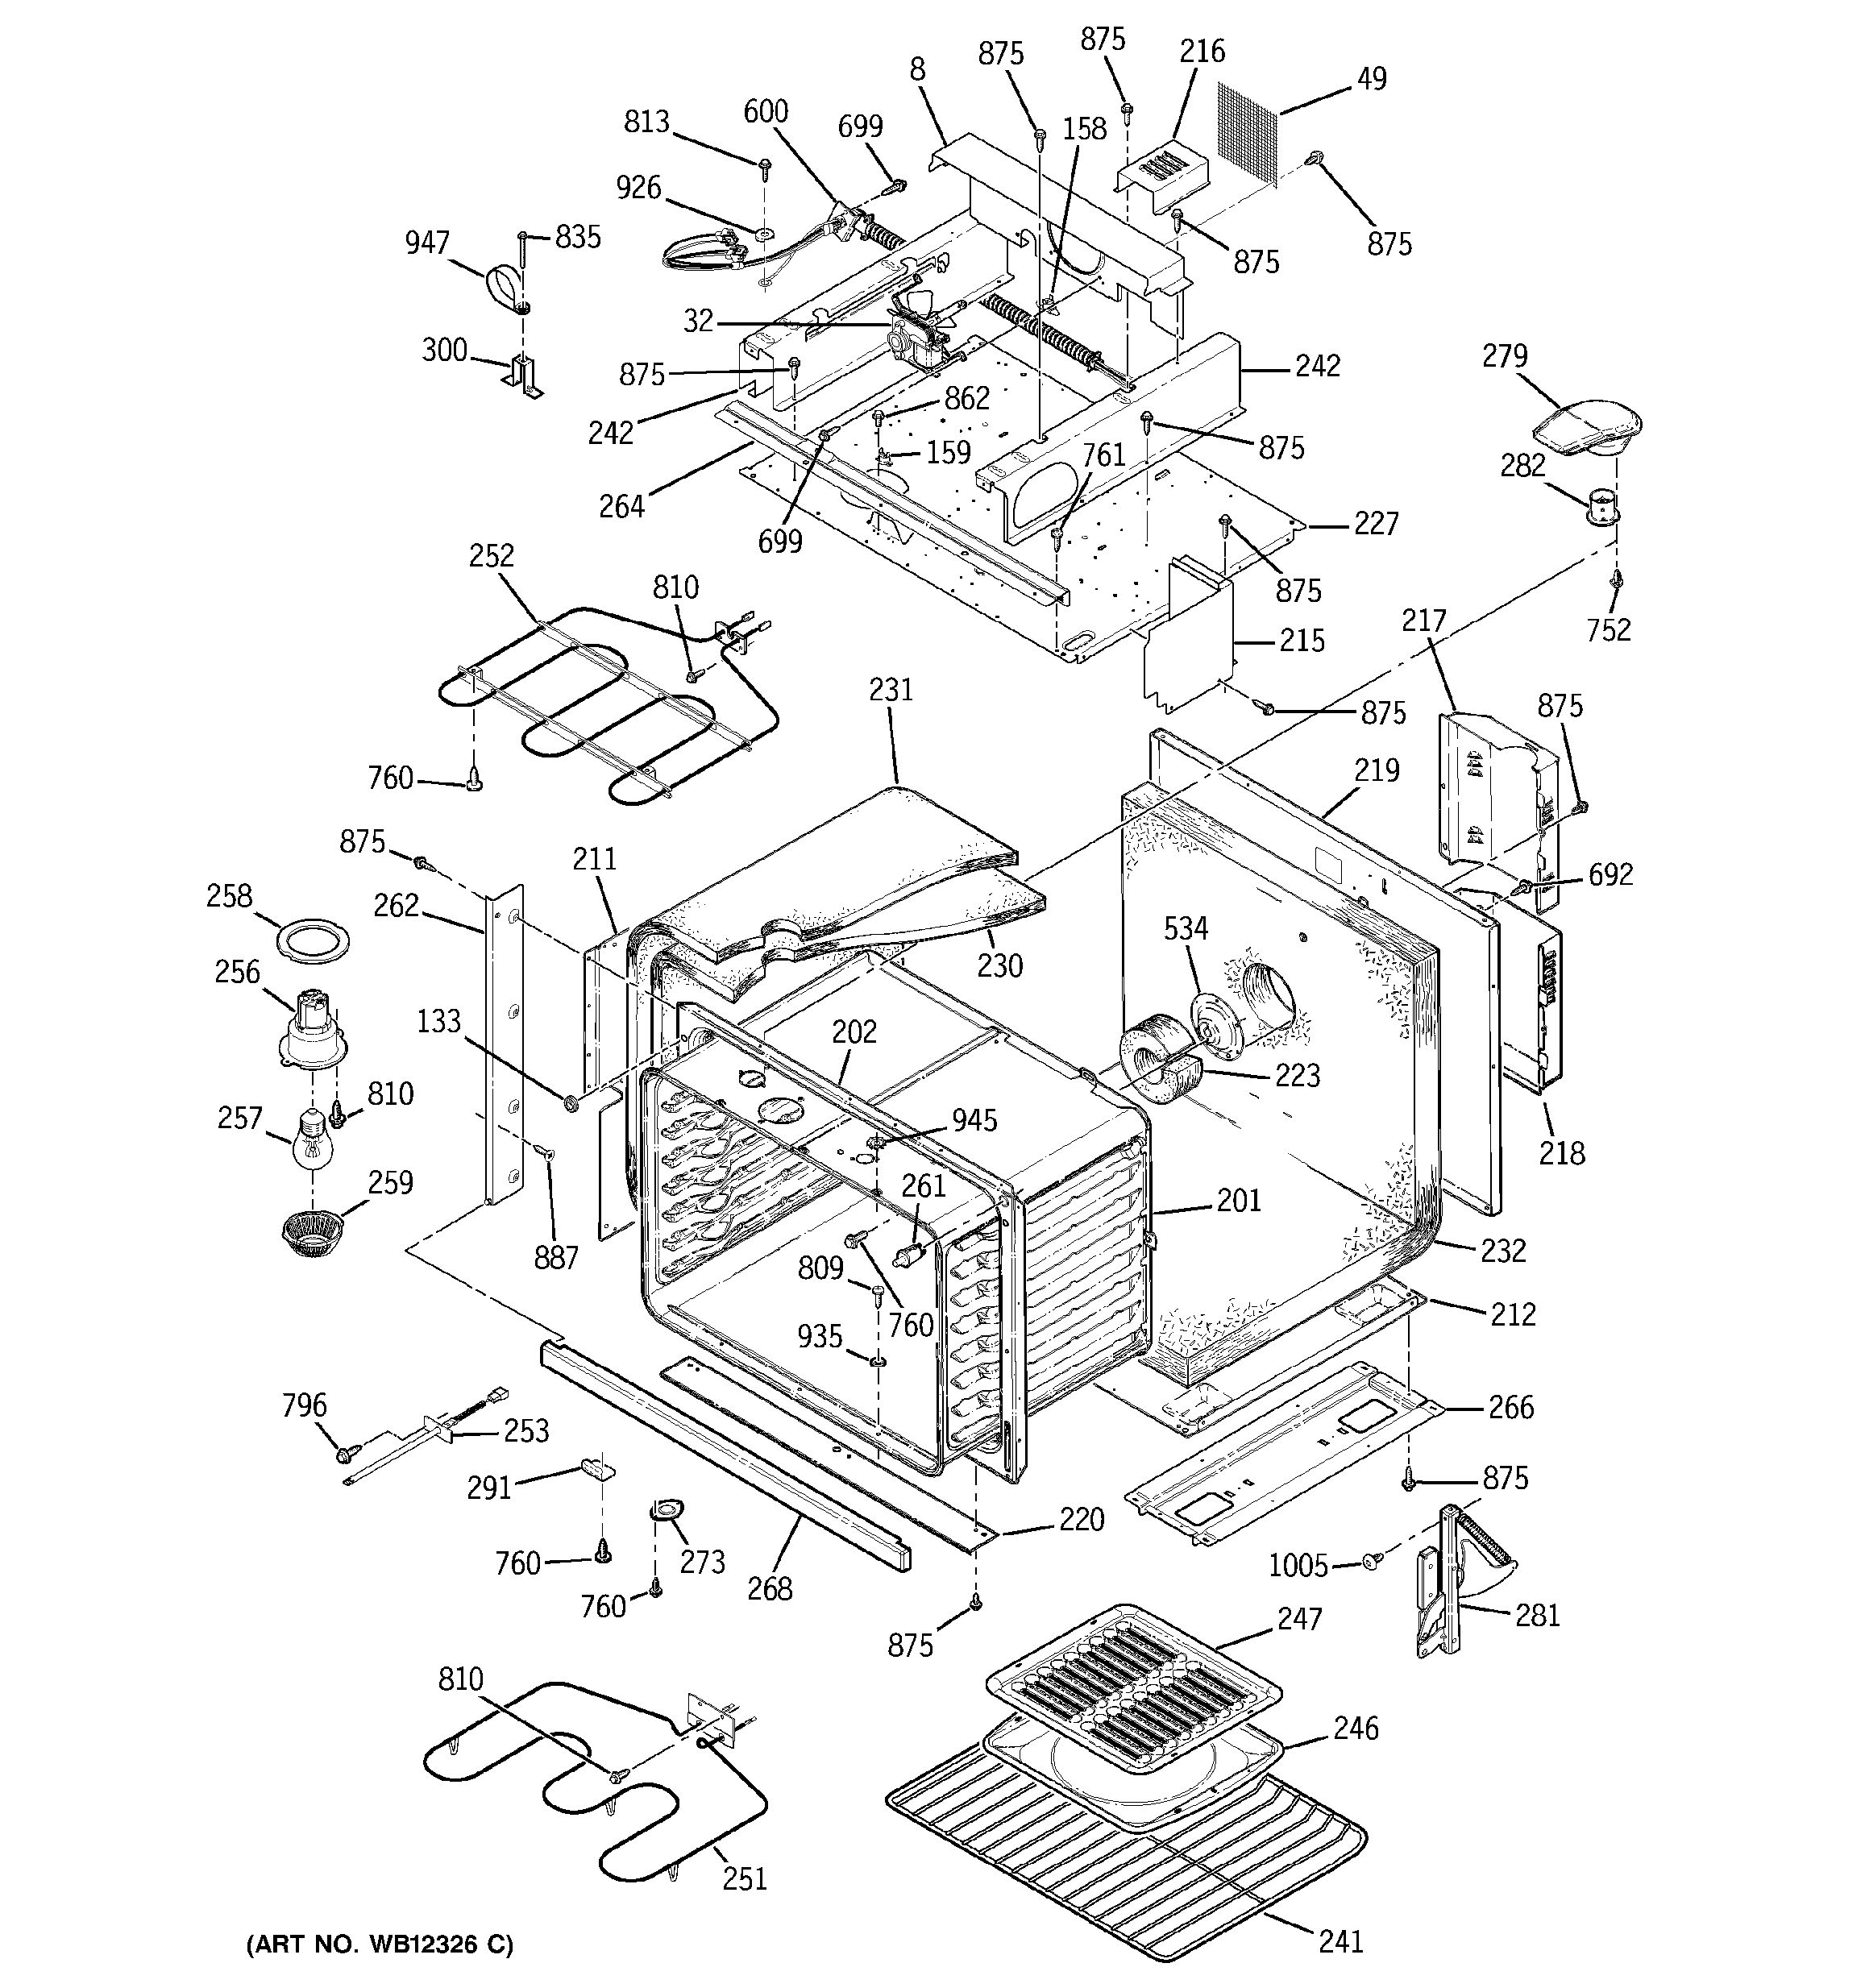 Assembly View For Body With Microwave Support Jtp85bd1bb